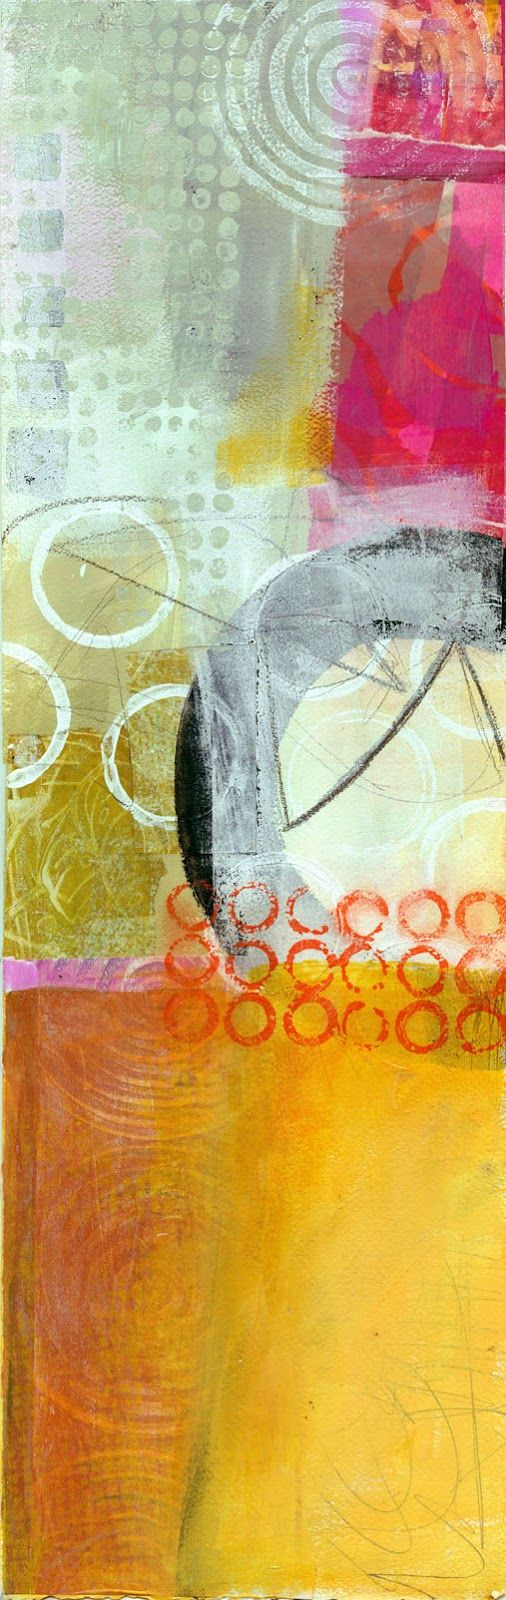 Jane Davies collage journeys: More Big Fat Art and a few more Verticals